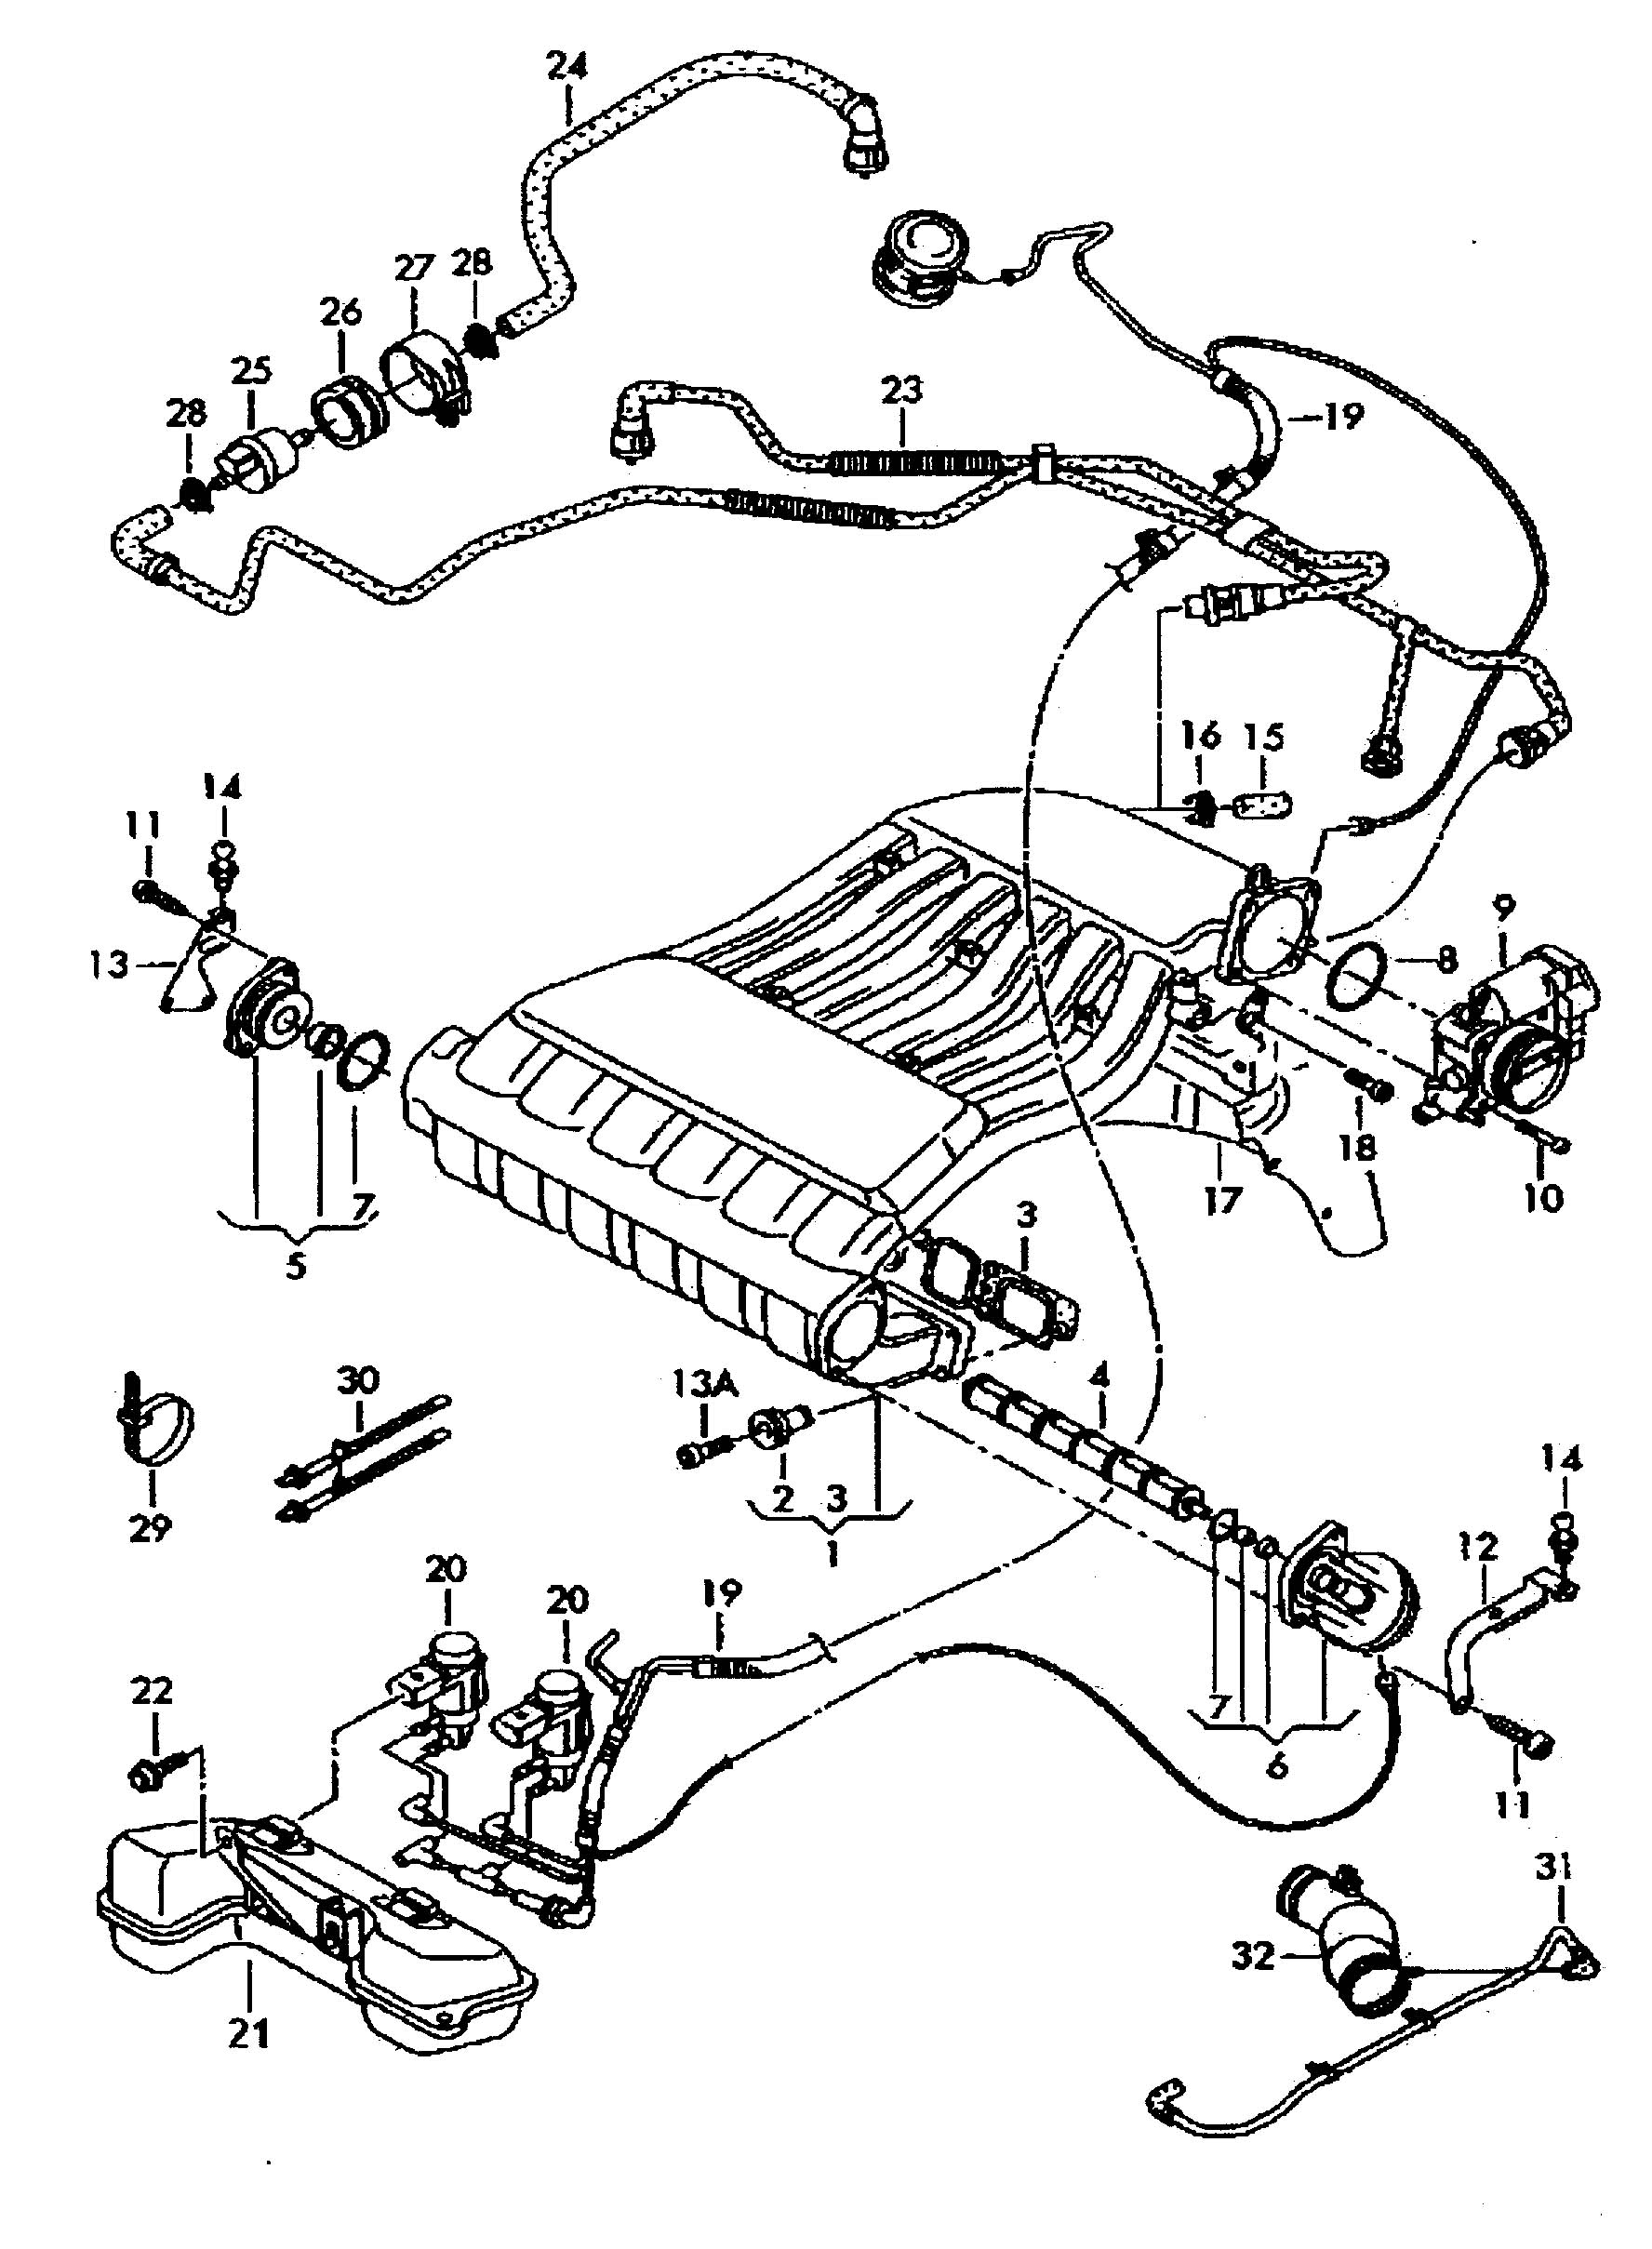 hight resolution of 24v vr6 jetta engine diagram wiring diagram yer 24v vr6 engine diagram 4 manualuniverse co